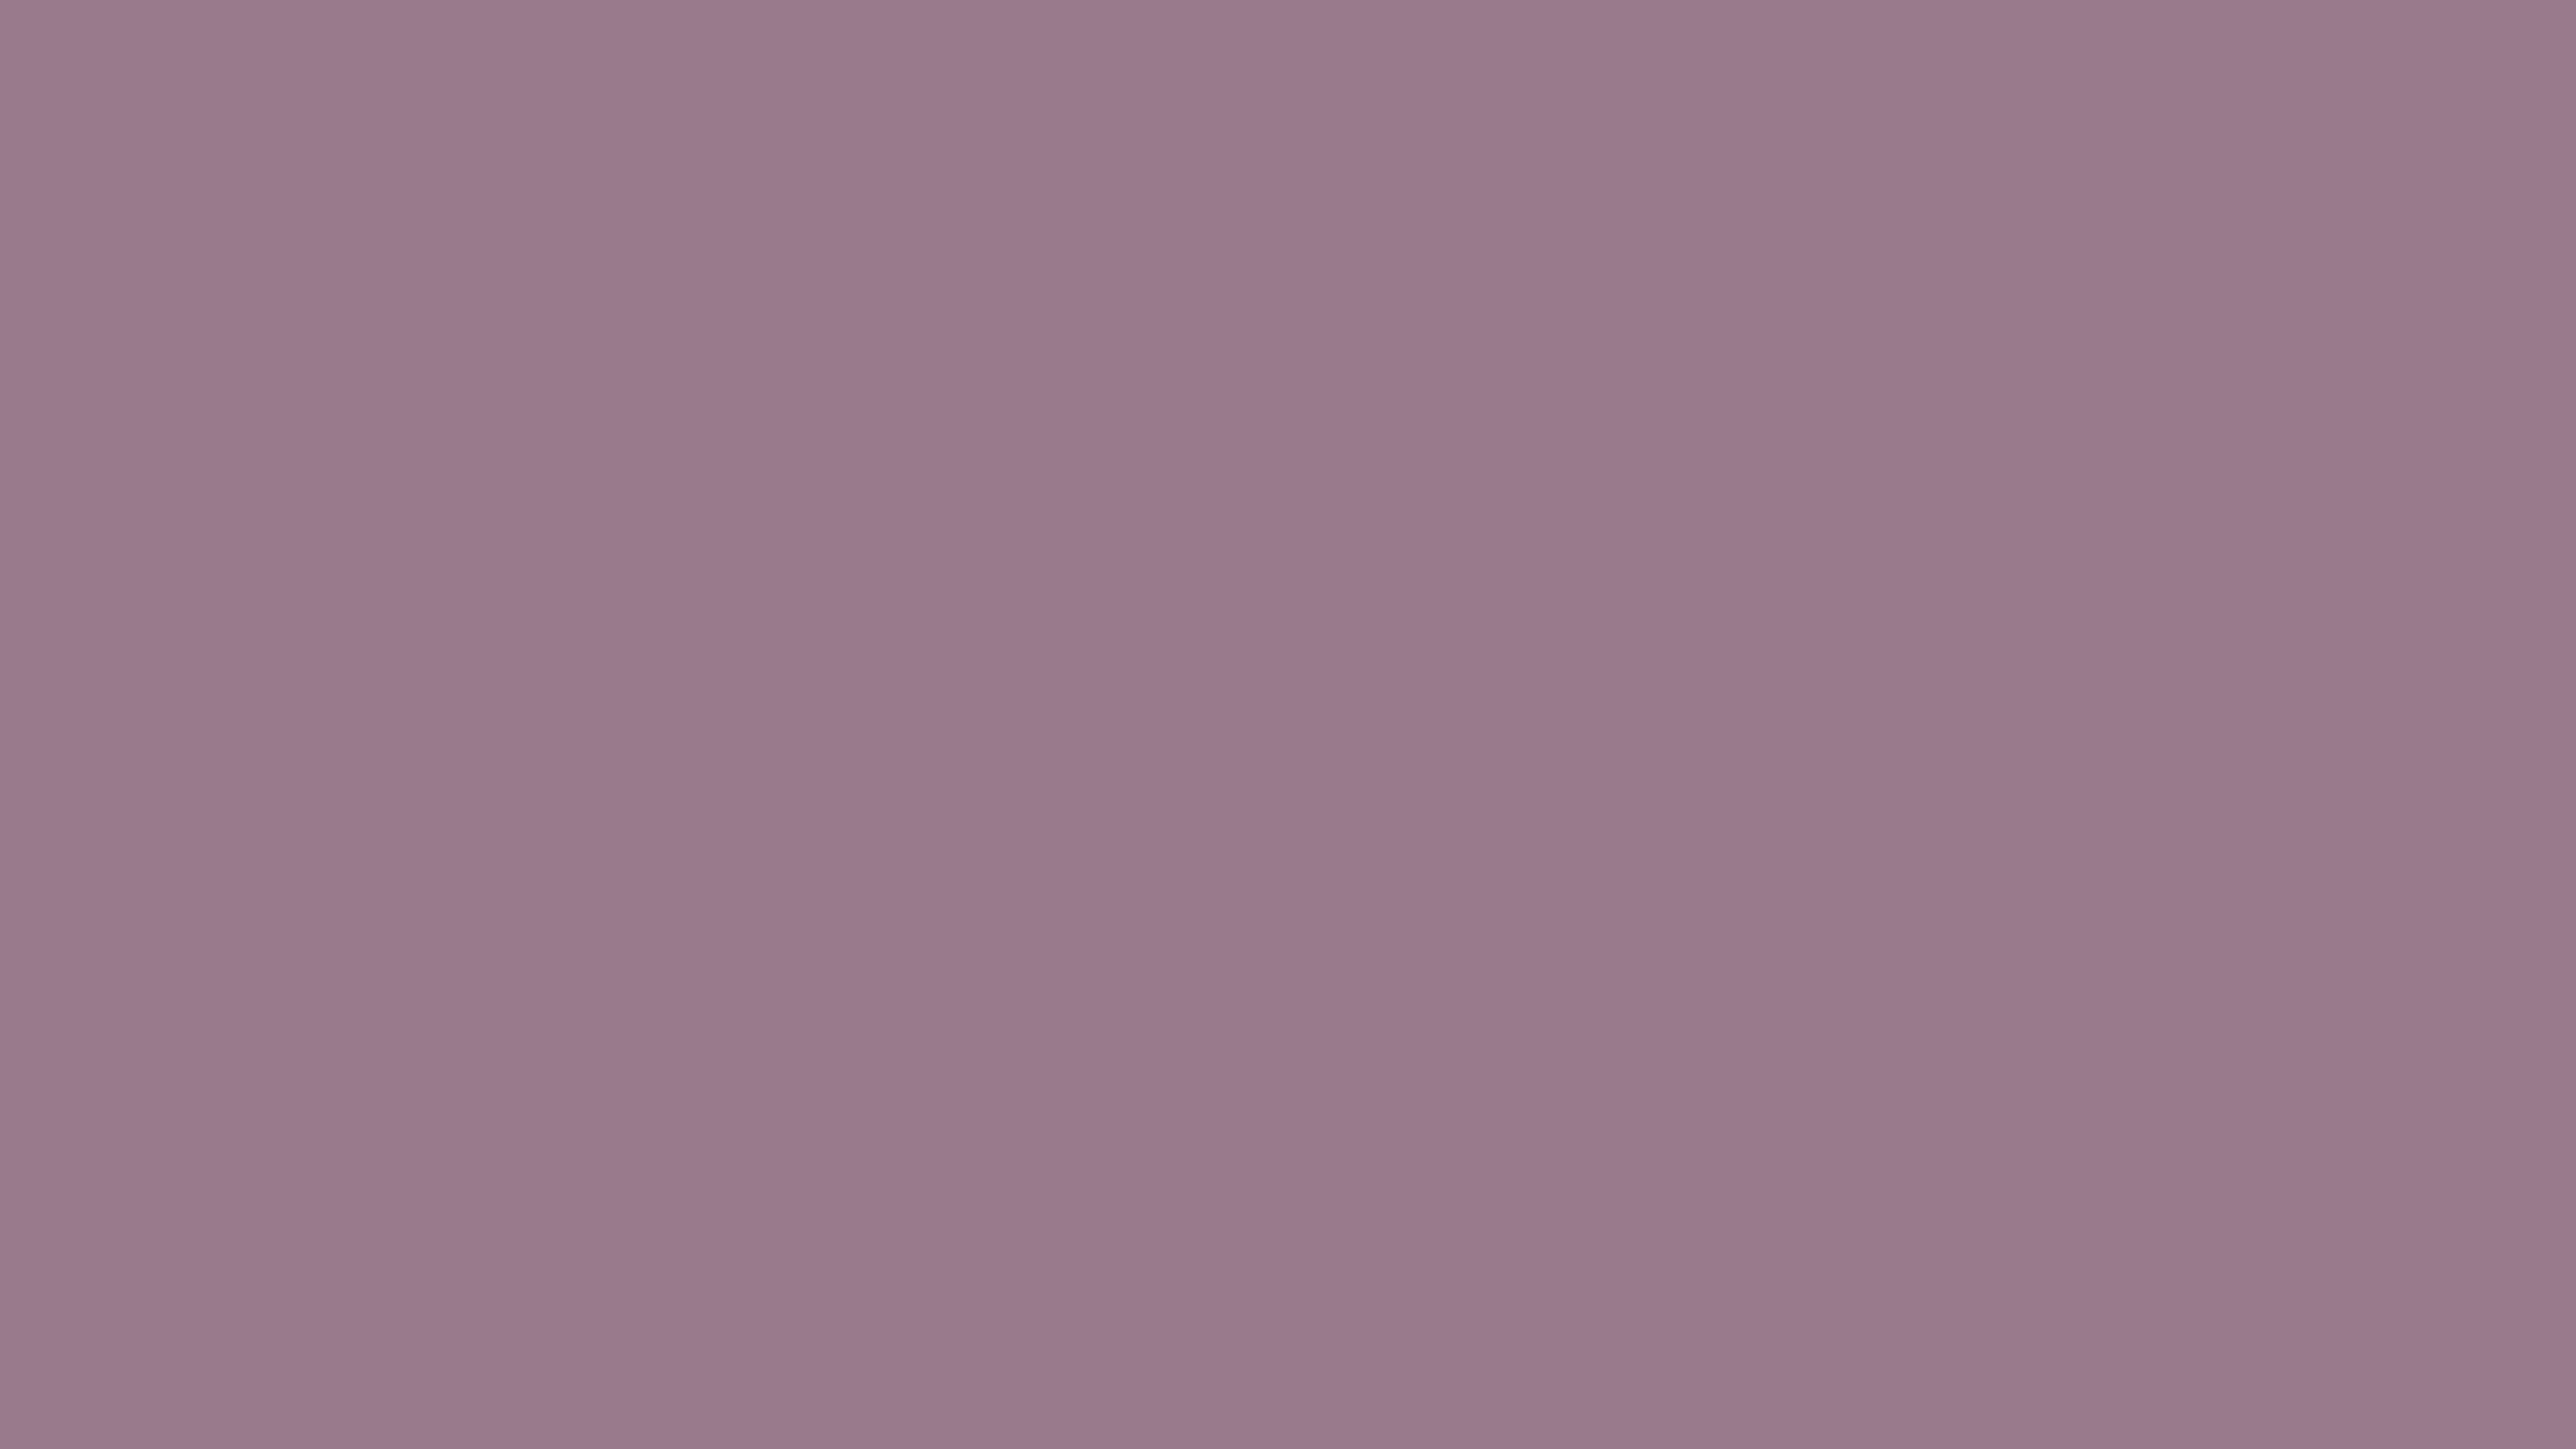 3840x2160 Mountbatten Pink Solid Color Background